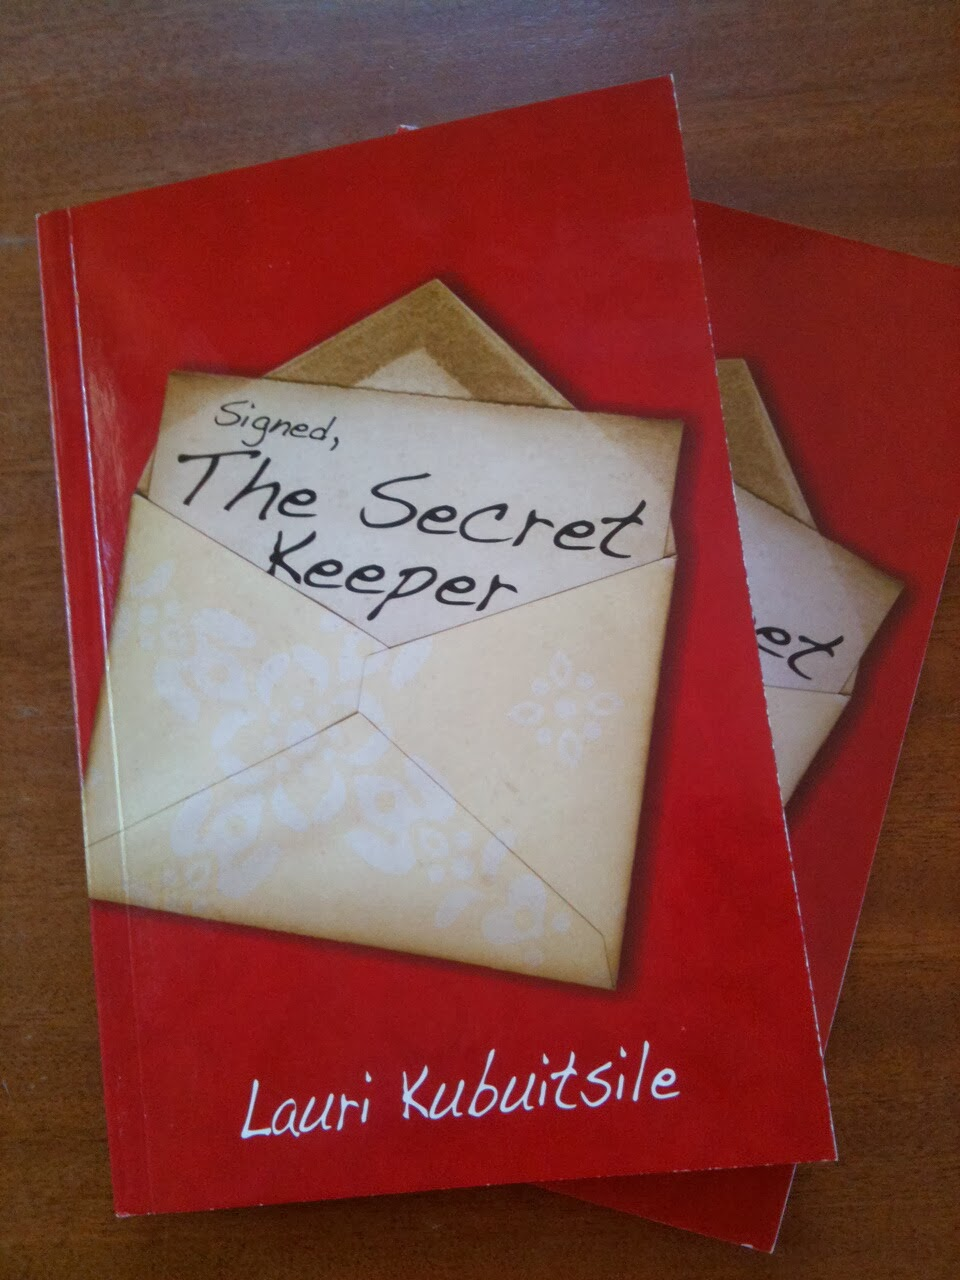 Signed, The Secret Keeper